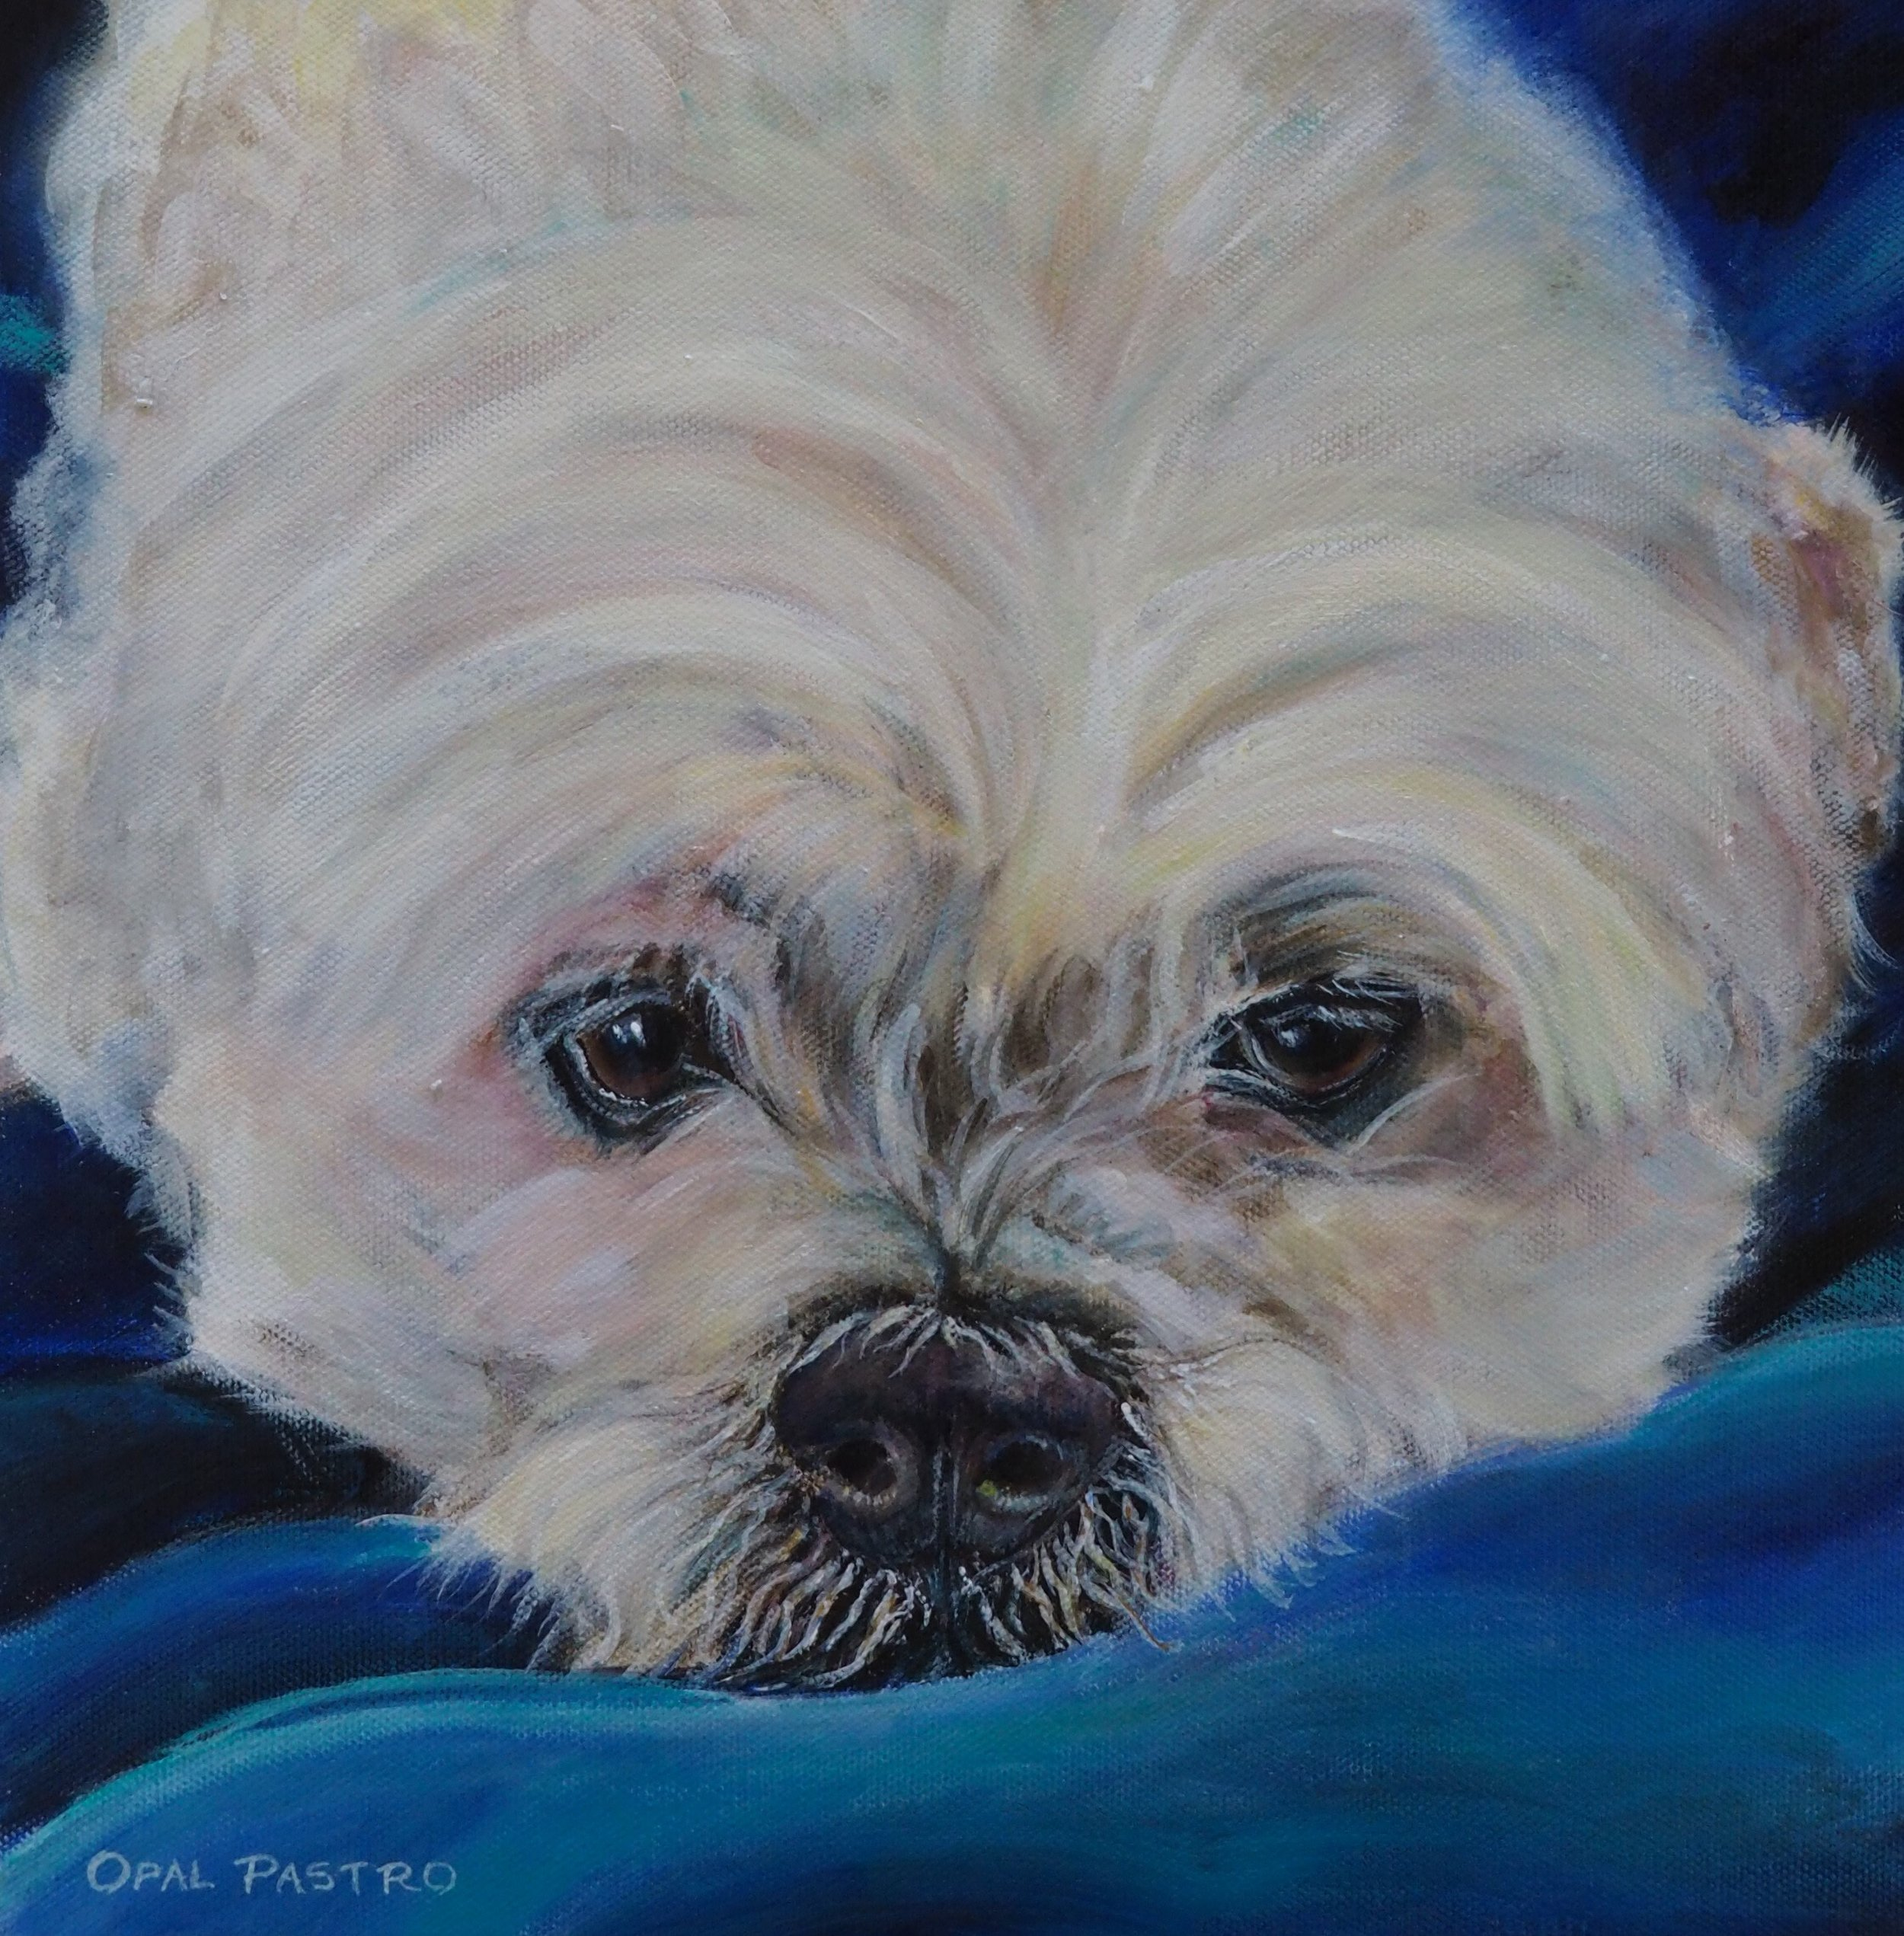 WHITE DOG PAINTING WITH BLUE BLANKET OF MALTESE MIX BY OPAL PASTRO ART